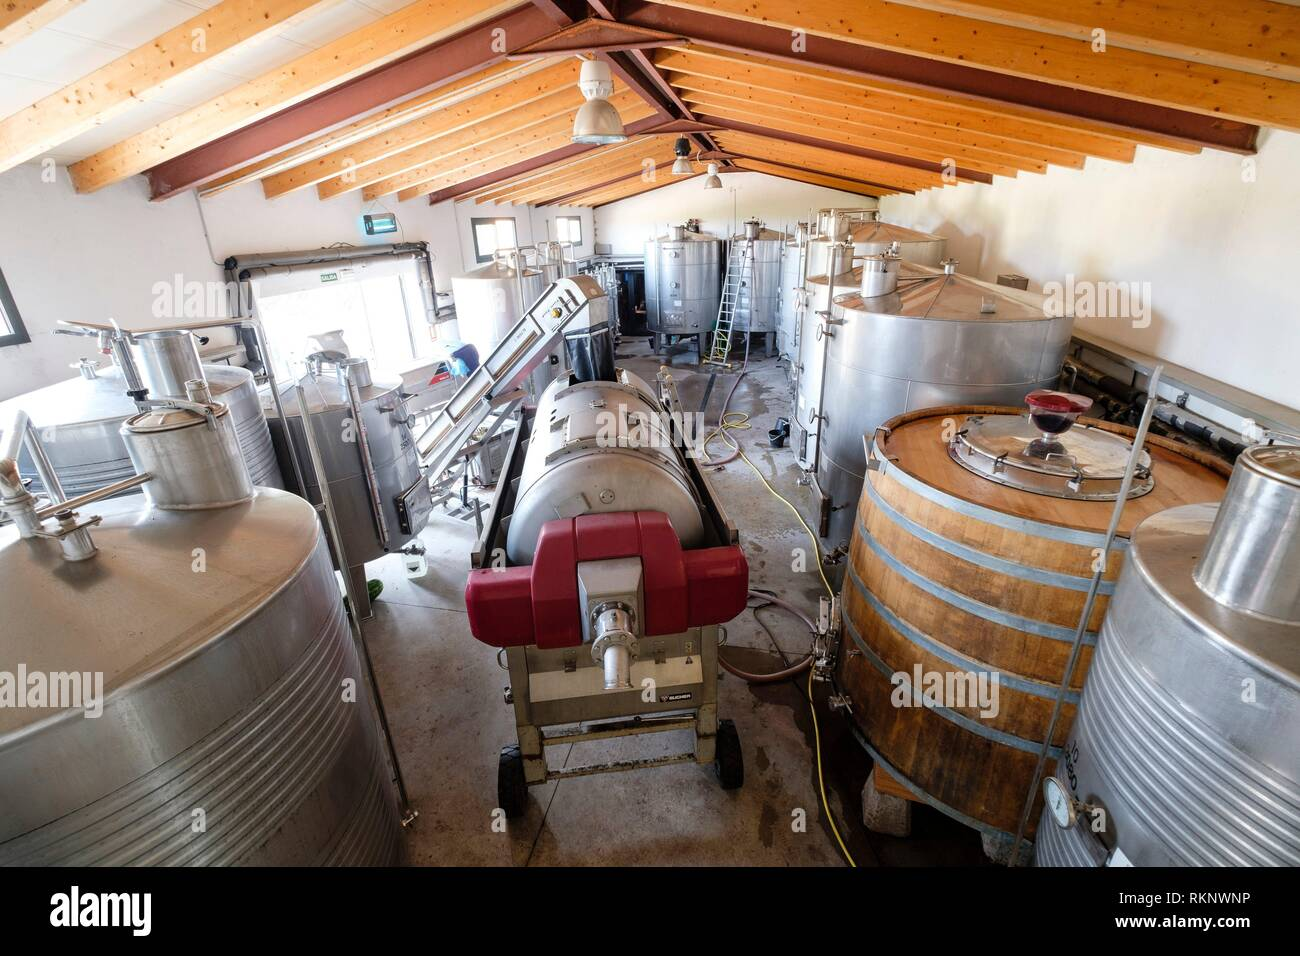 Celler Mesquida-Mora, Porreres, Mallorca, Balearic islands, Spain. - Stock Image